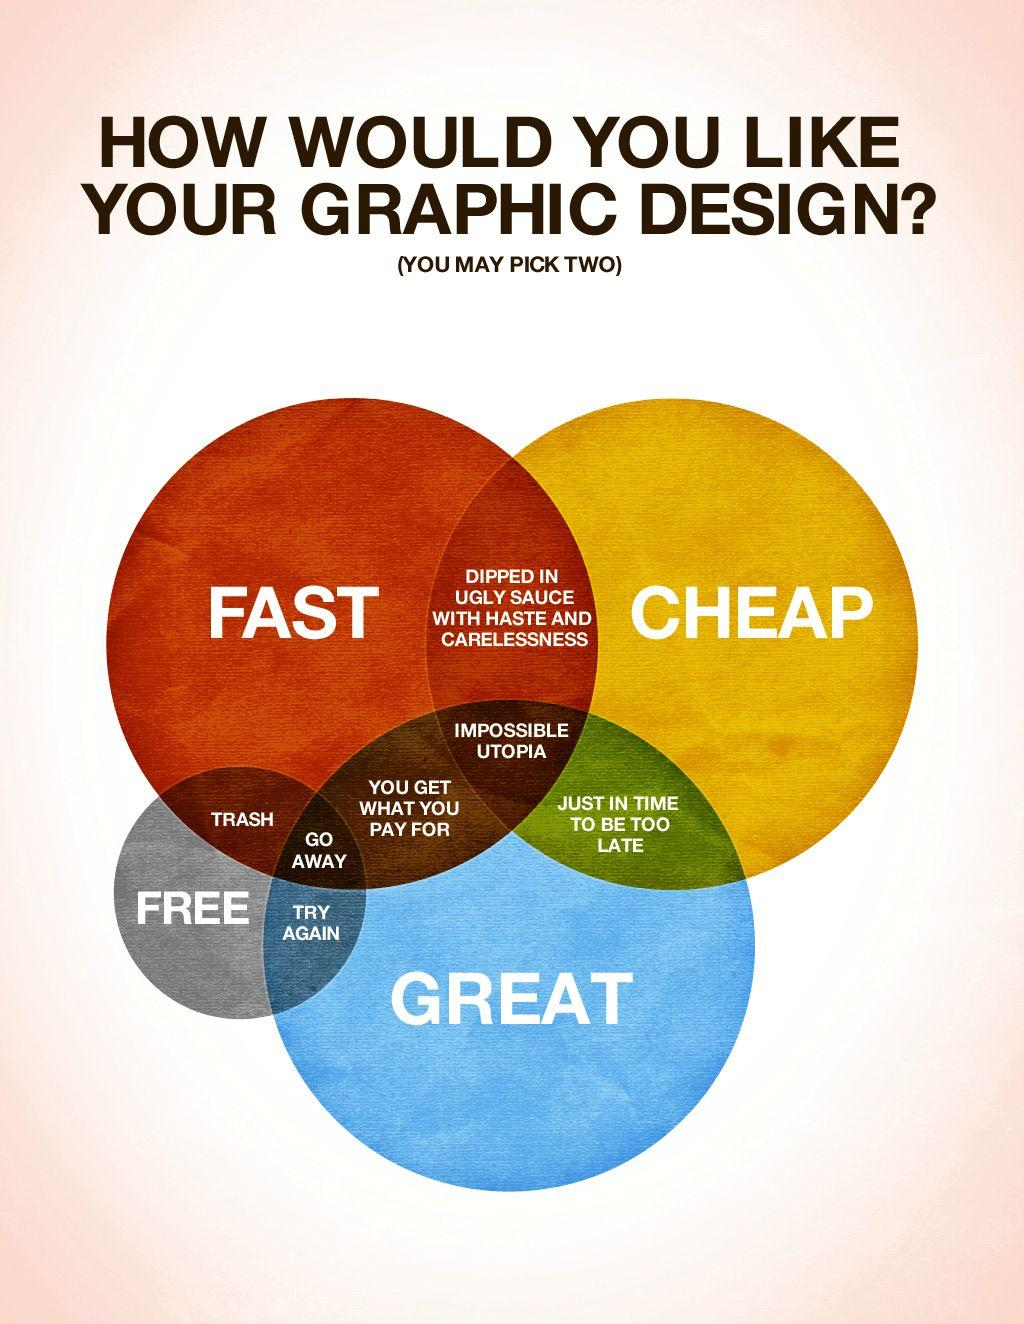 A Venn diagram illustrating how it's almost impossible to have design work done cheaply, quickly, and with good quality. It states that you can only pick two.